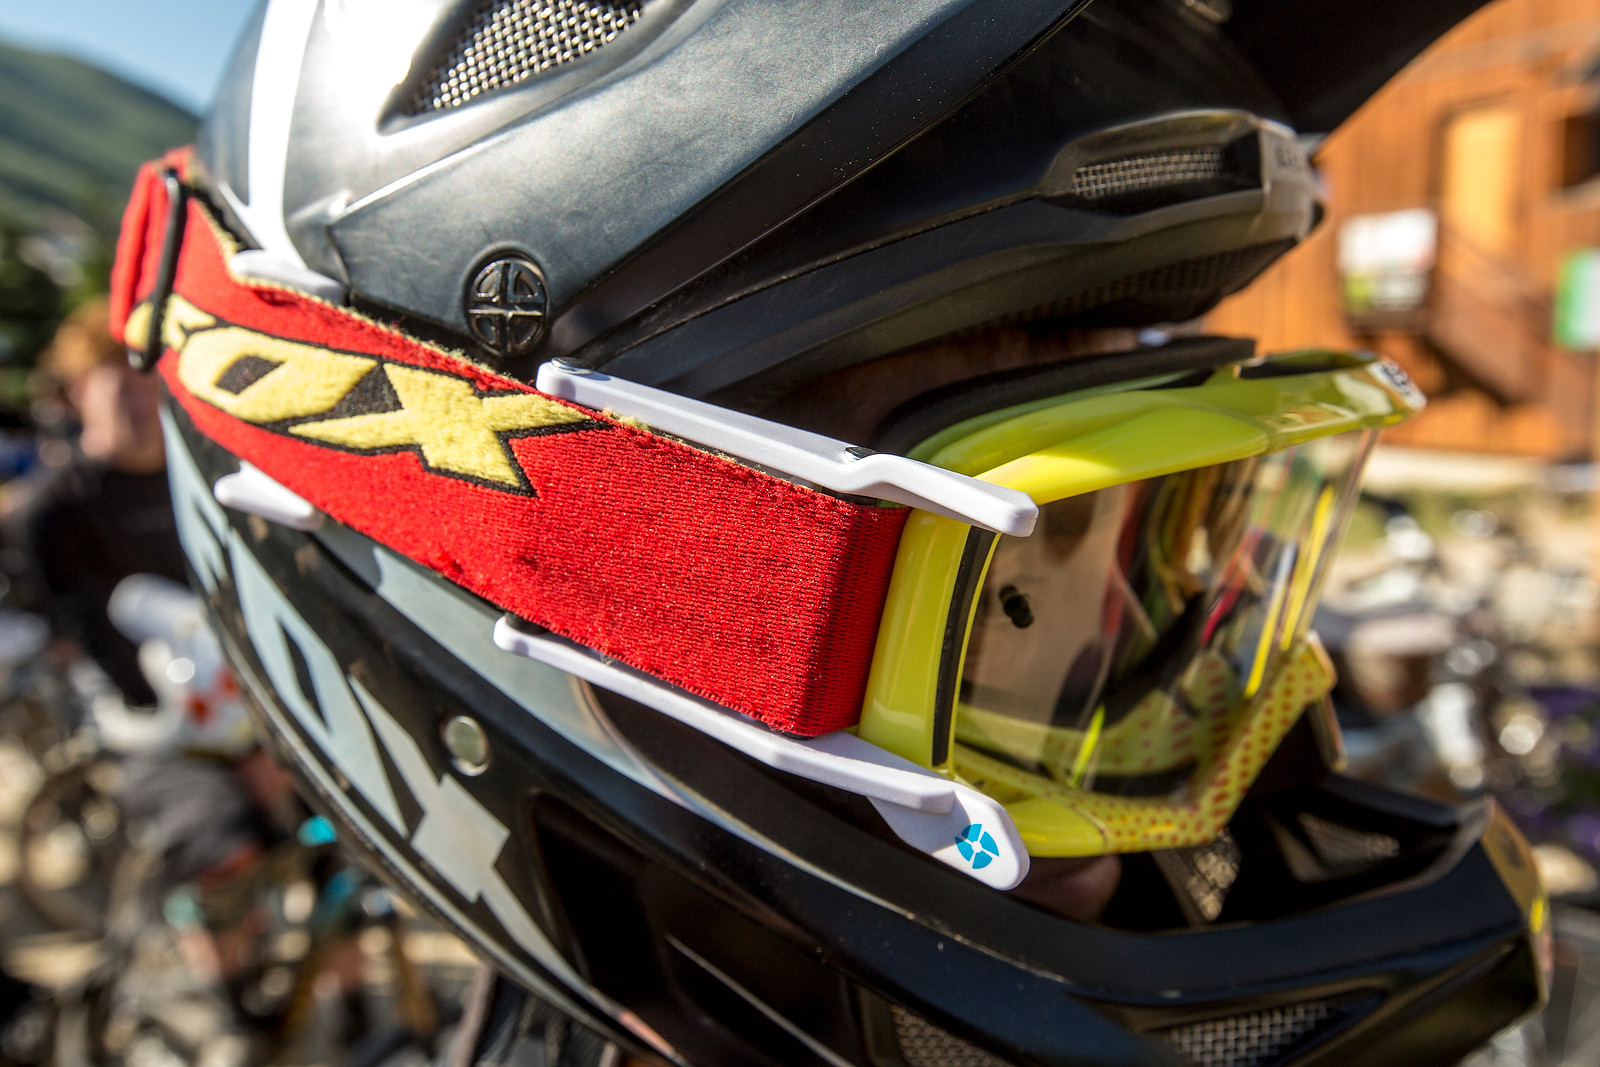 Airflaps Anti-Fog System for MTB Helmets and Goggles - Airflaps Anti-Fog System for MTB Helmets and Goggles - Mountain Biking Pictures - Vital MTB